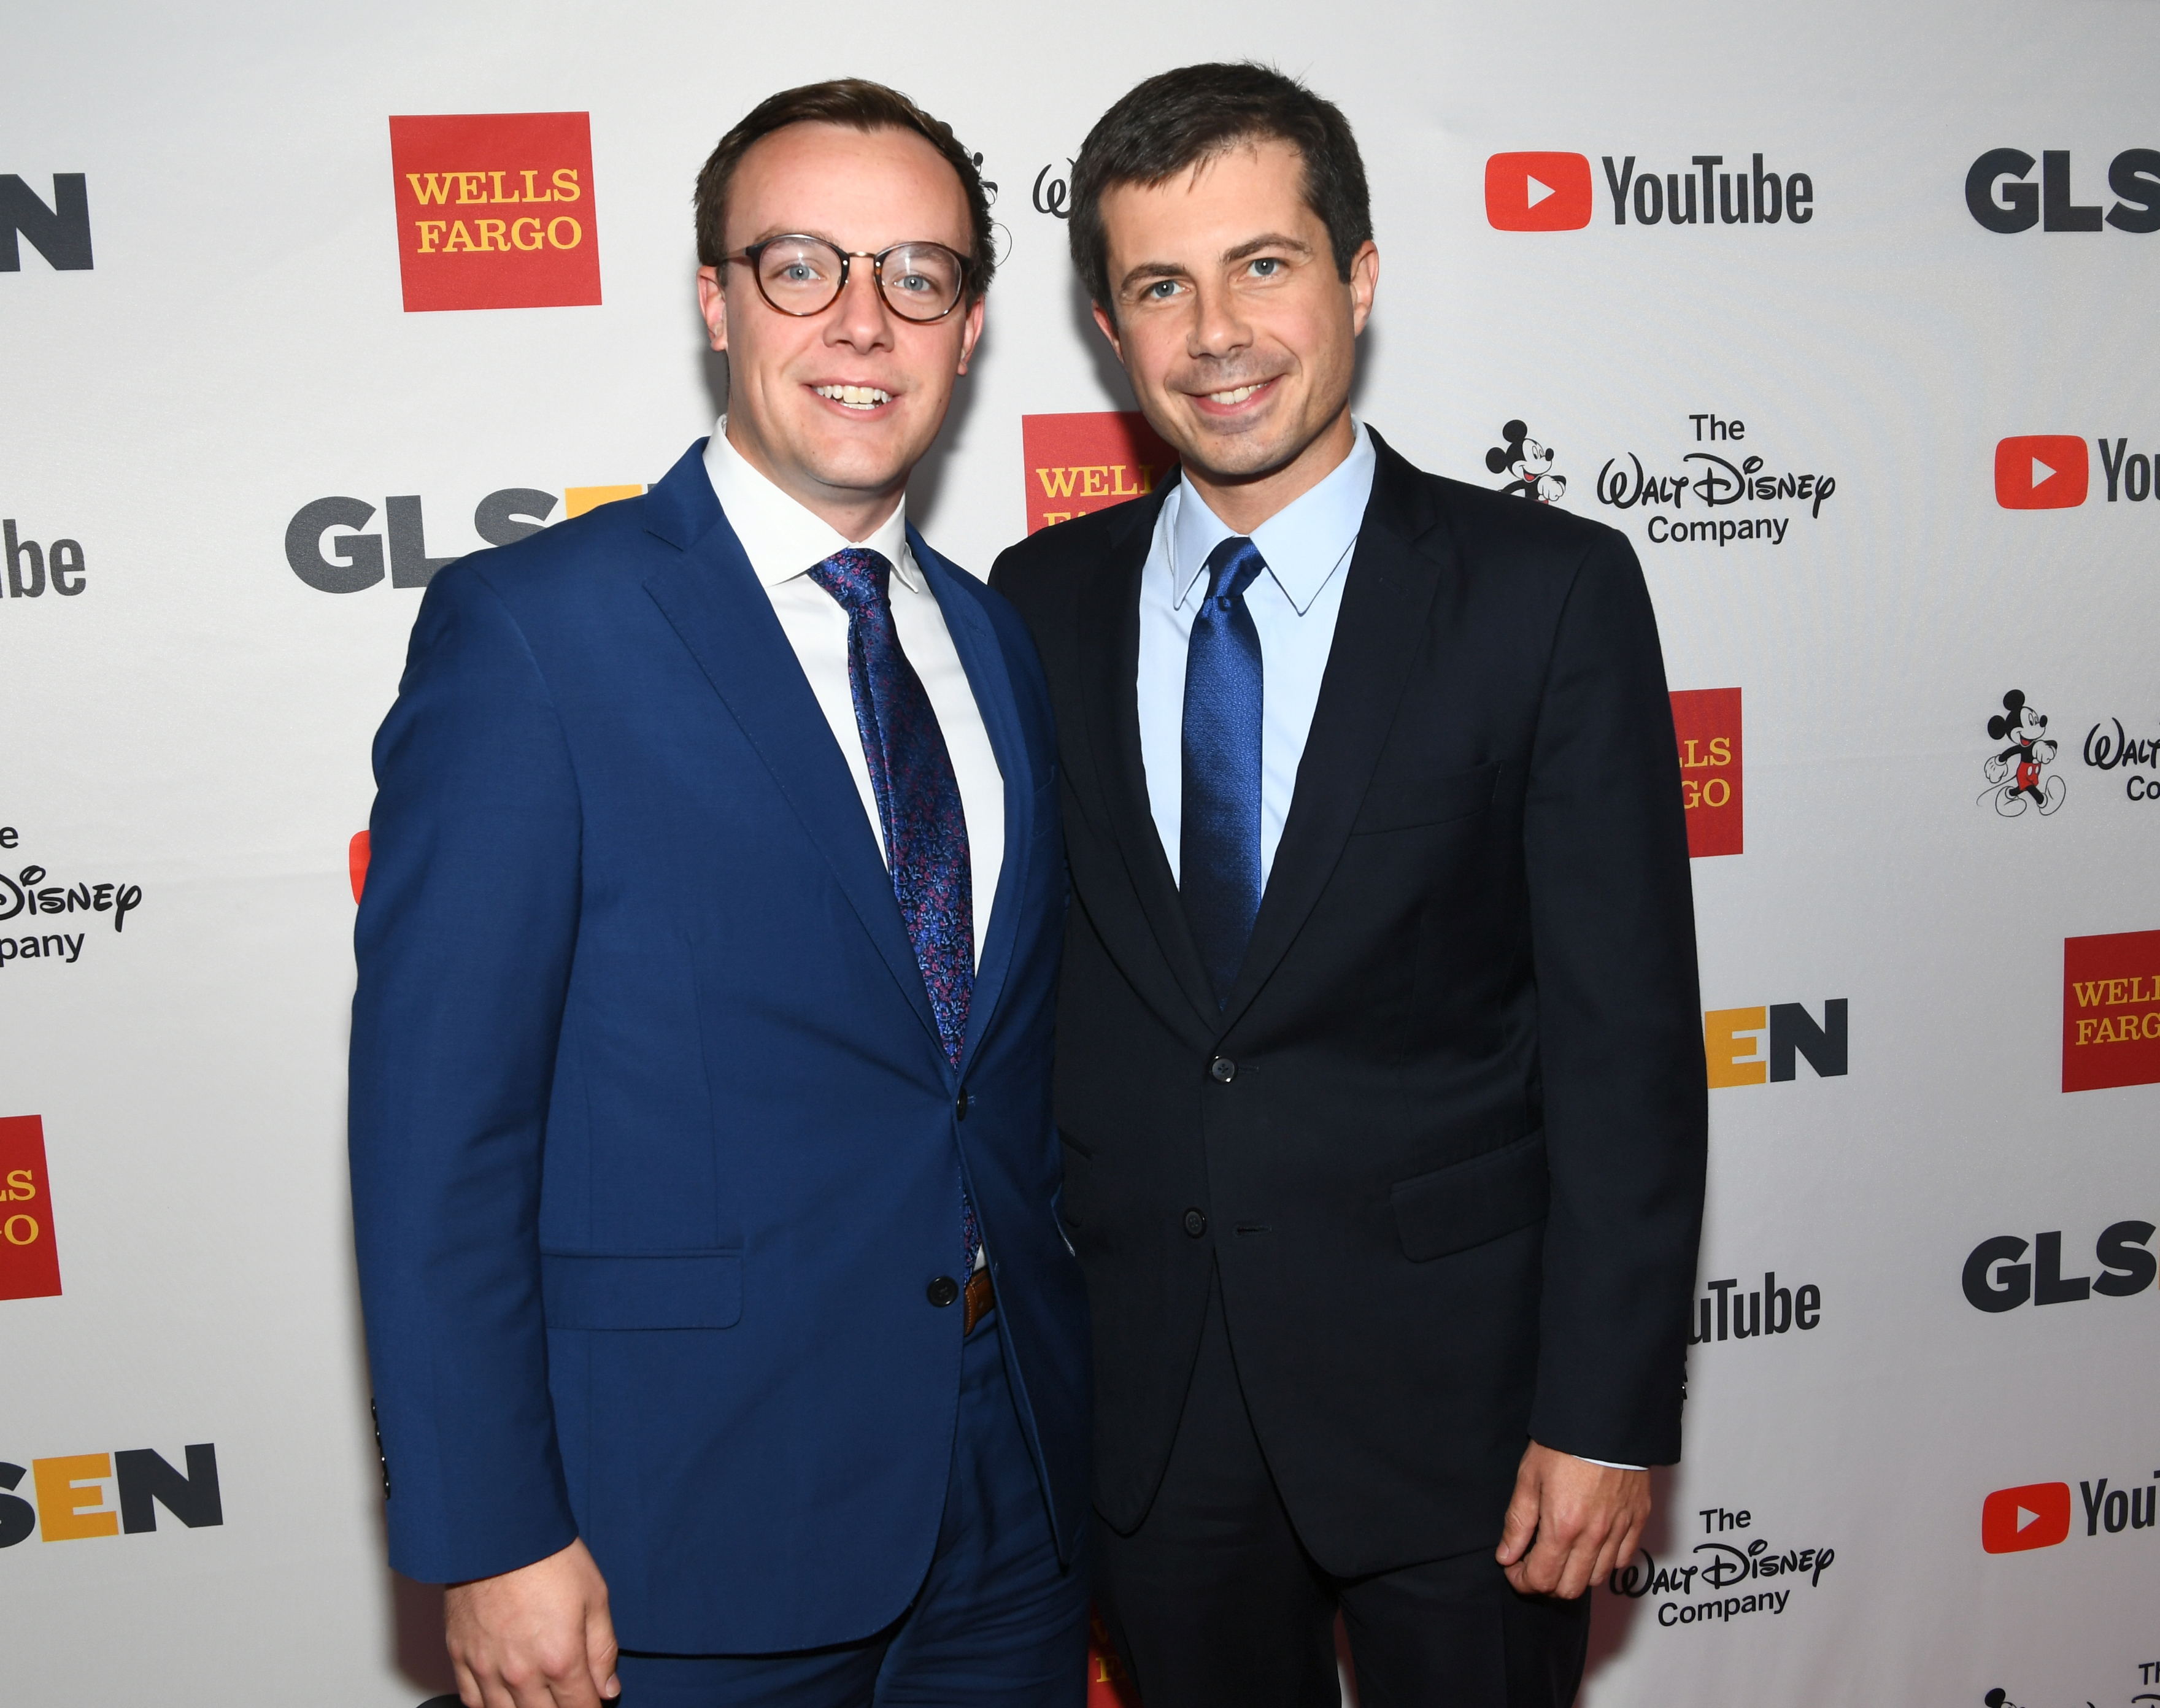 Chasten Glezman (L), and Mayor Peter Buttigieg at the 2017 GLSEN Respect Awards at the Beverly Wilshire Hotel on October 20, 2017 in Los Angeles, California. (Photo by Emma McIntyre/Getty Images for GLSEN)